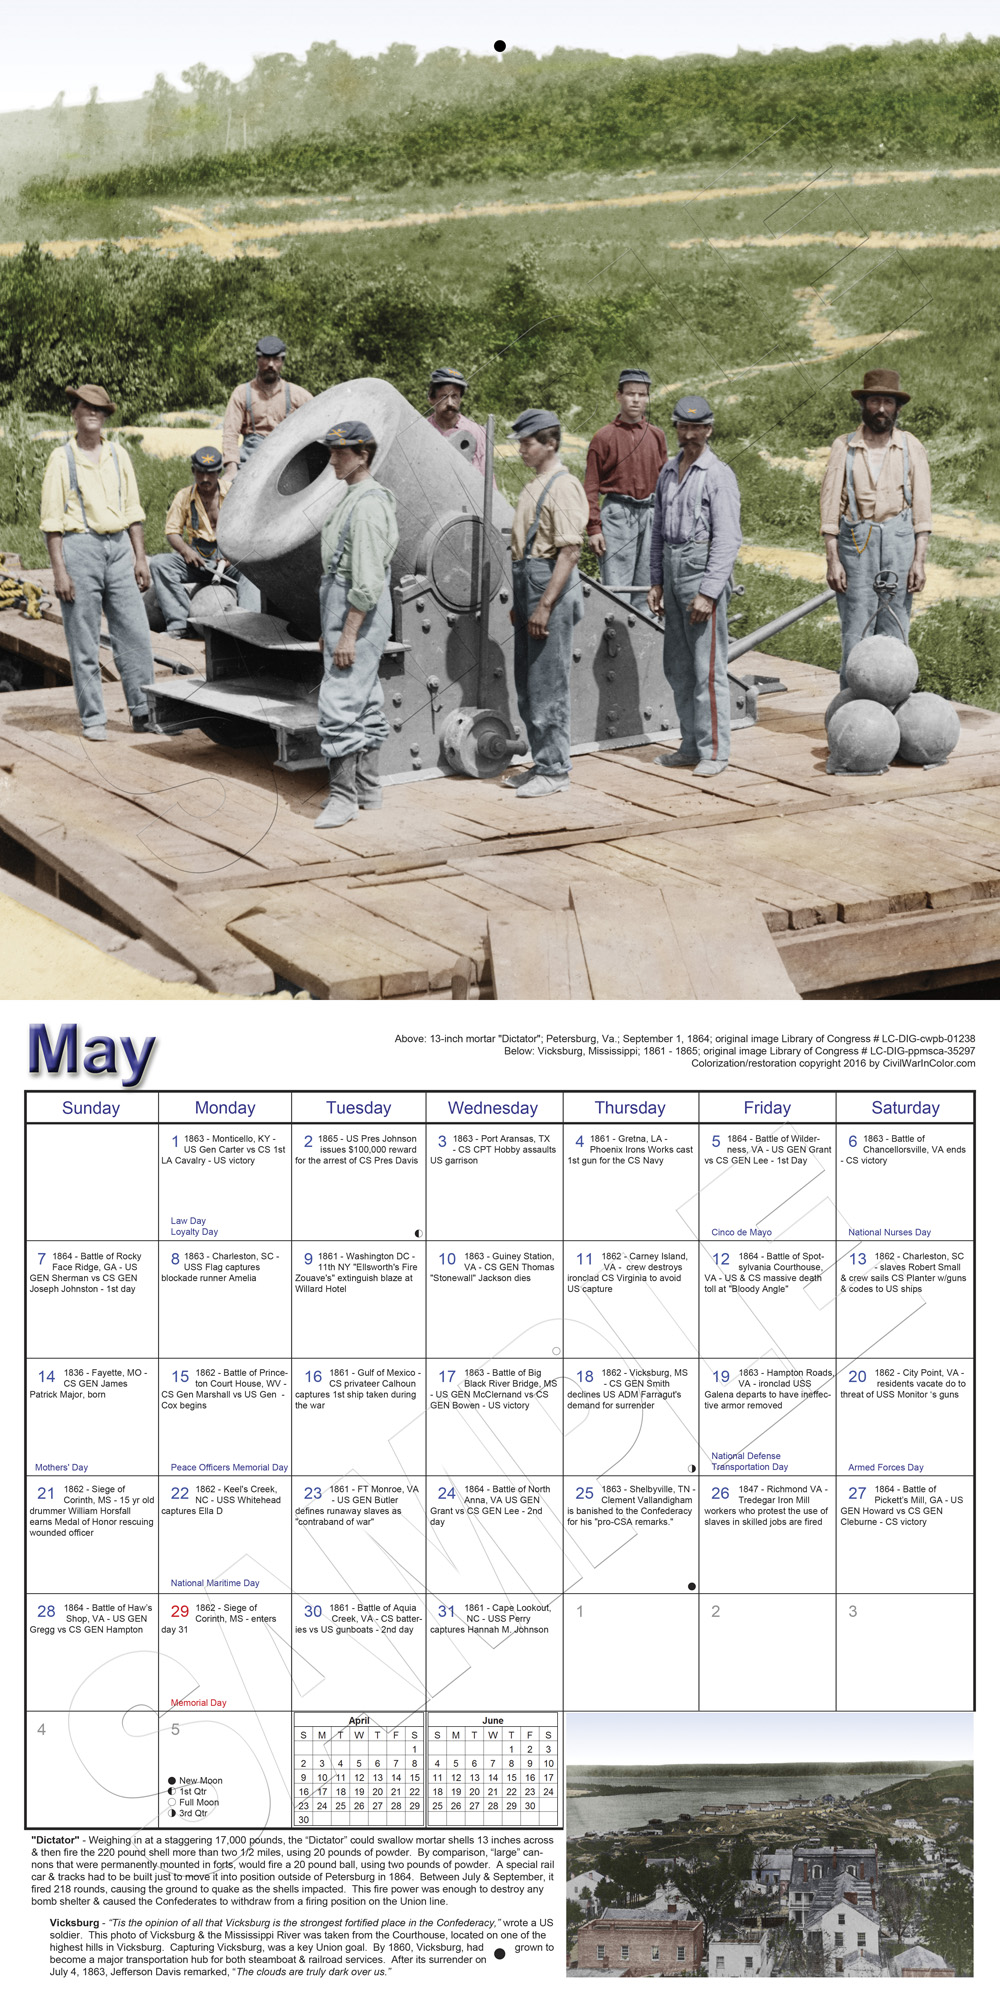 May Calendar History : Calendar history in full color